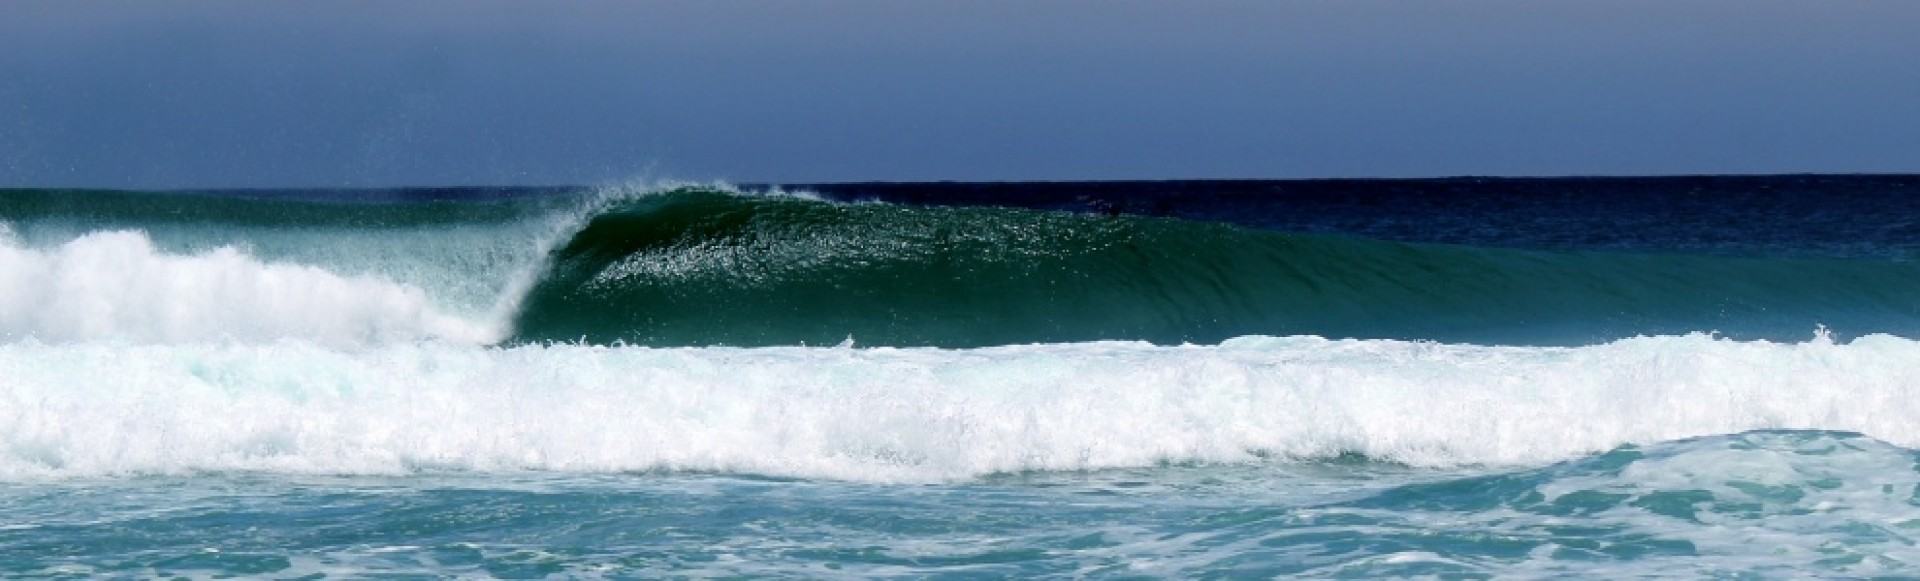 Ricardo's photo of Margaret River